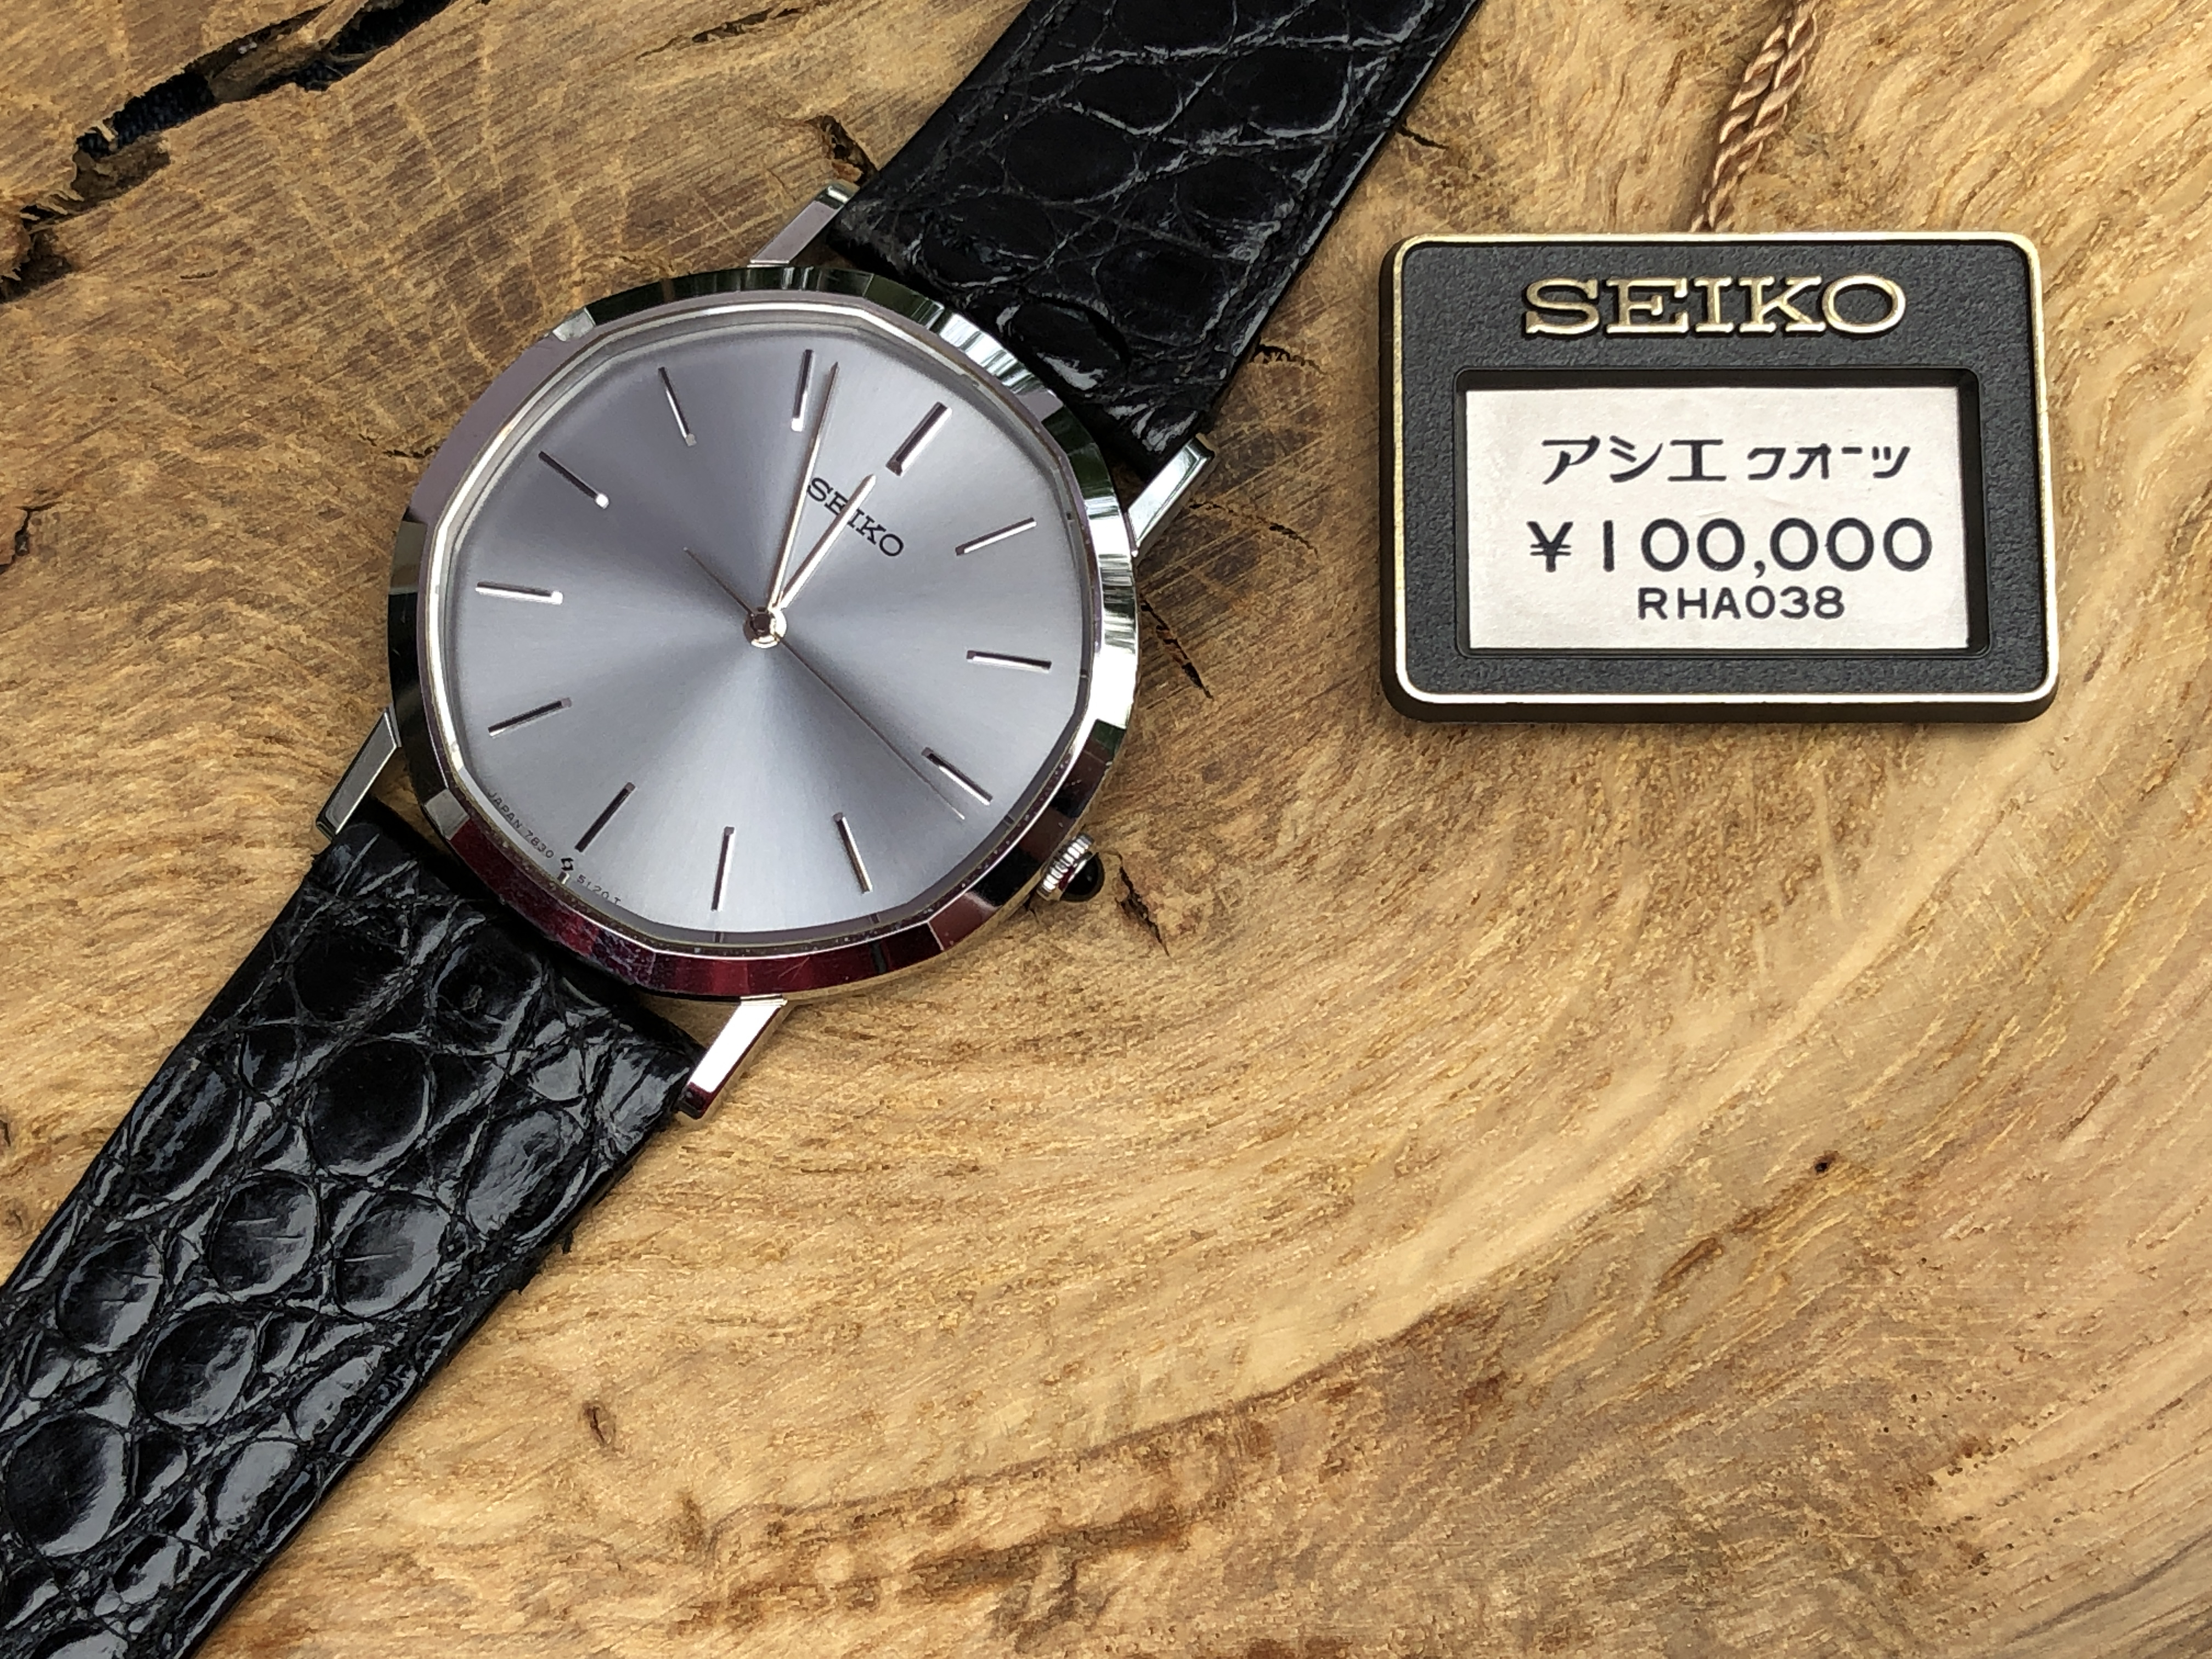 Seiko Quartz 7830-5100 (For sale)